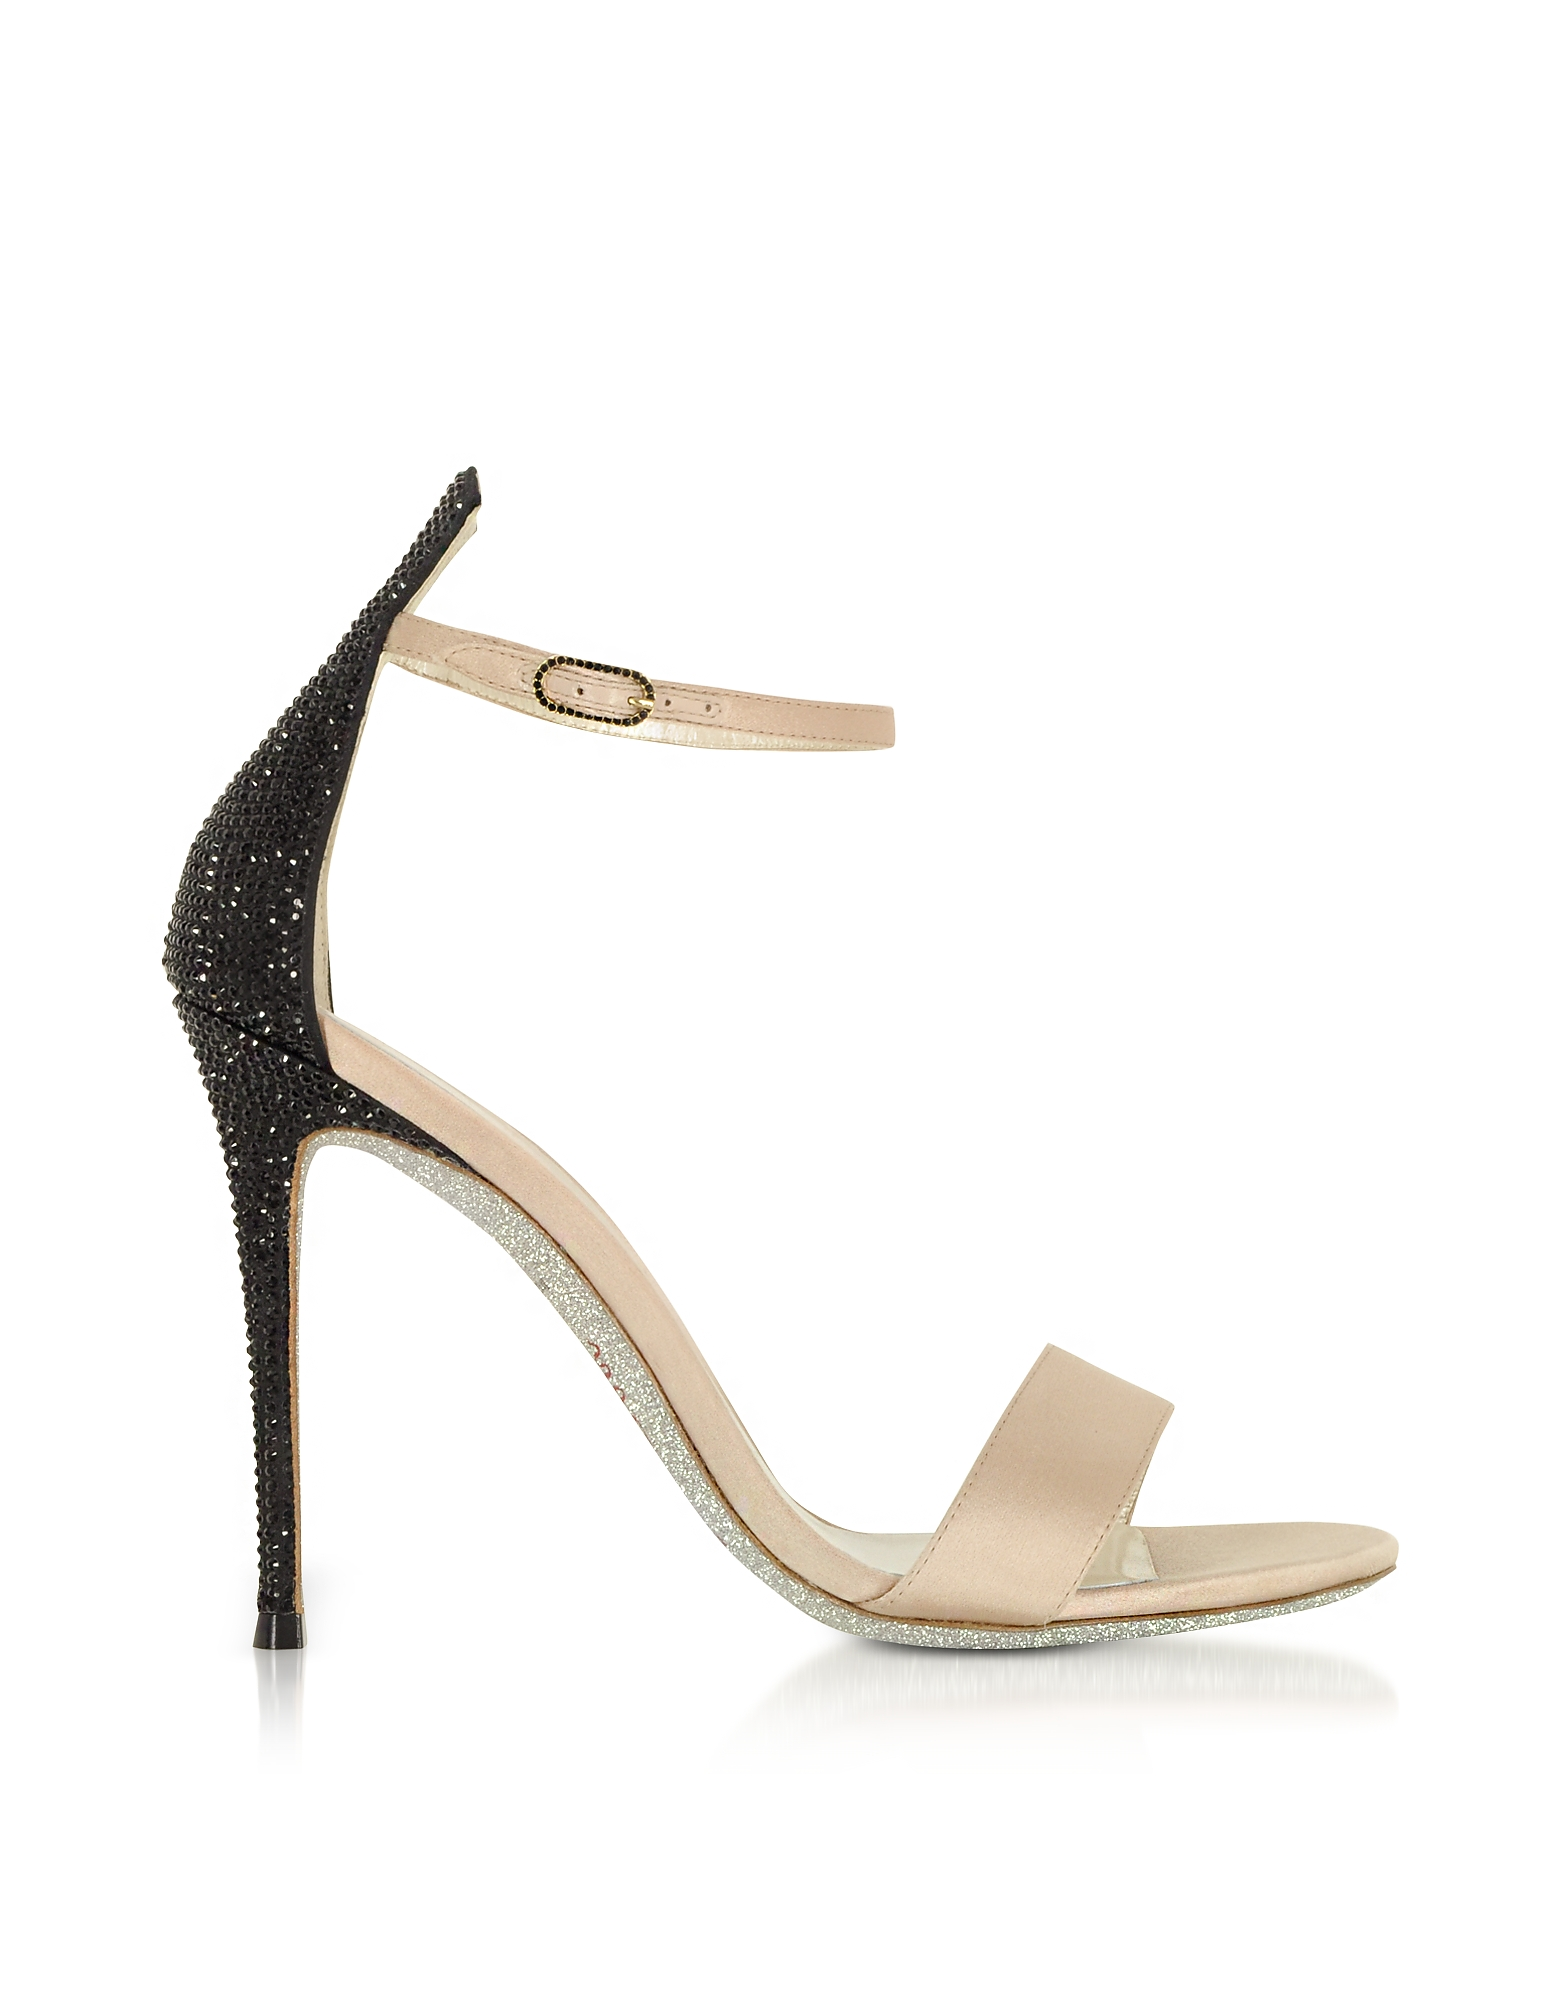 Rene Caovilla Shoes, Celebrita Nude Satin Sandals w/Black Crystals